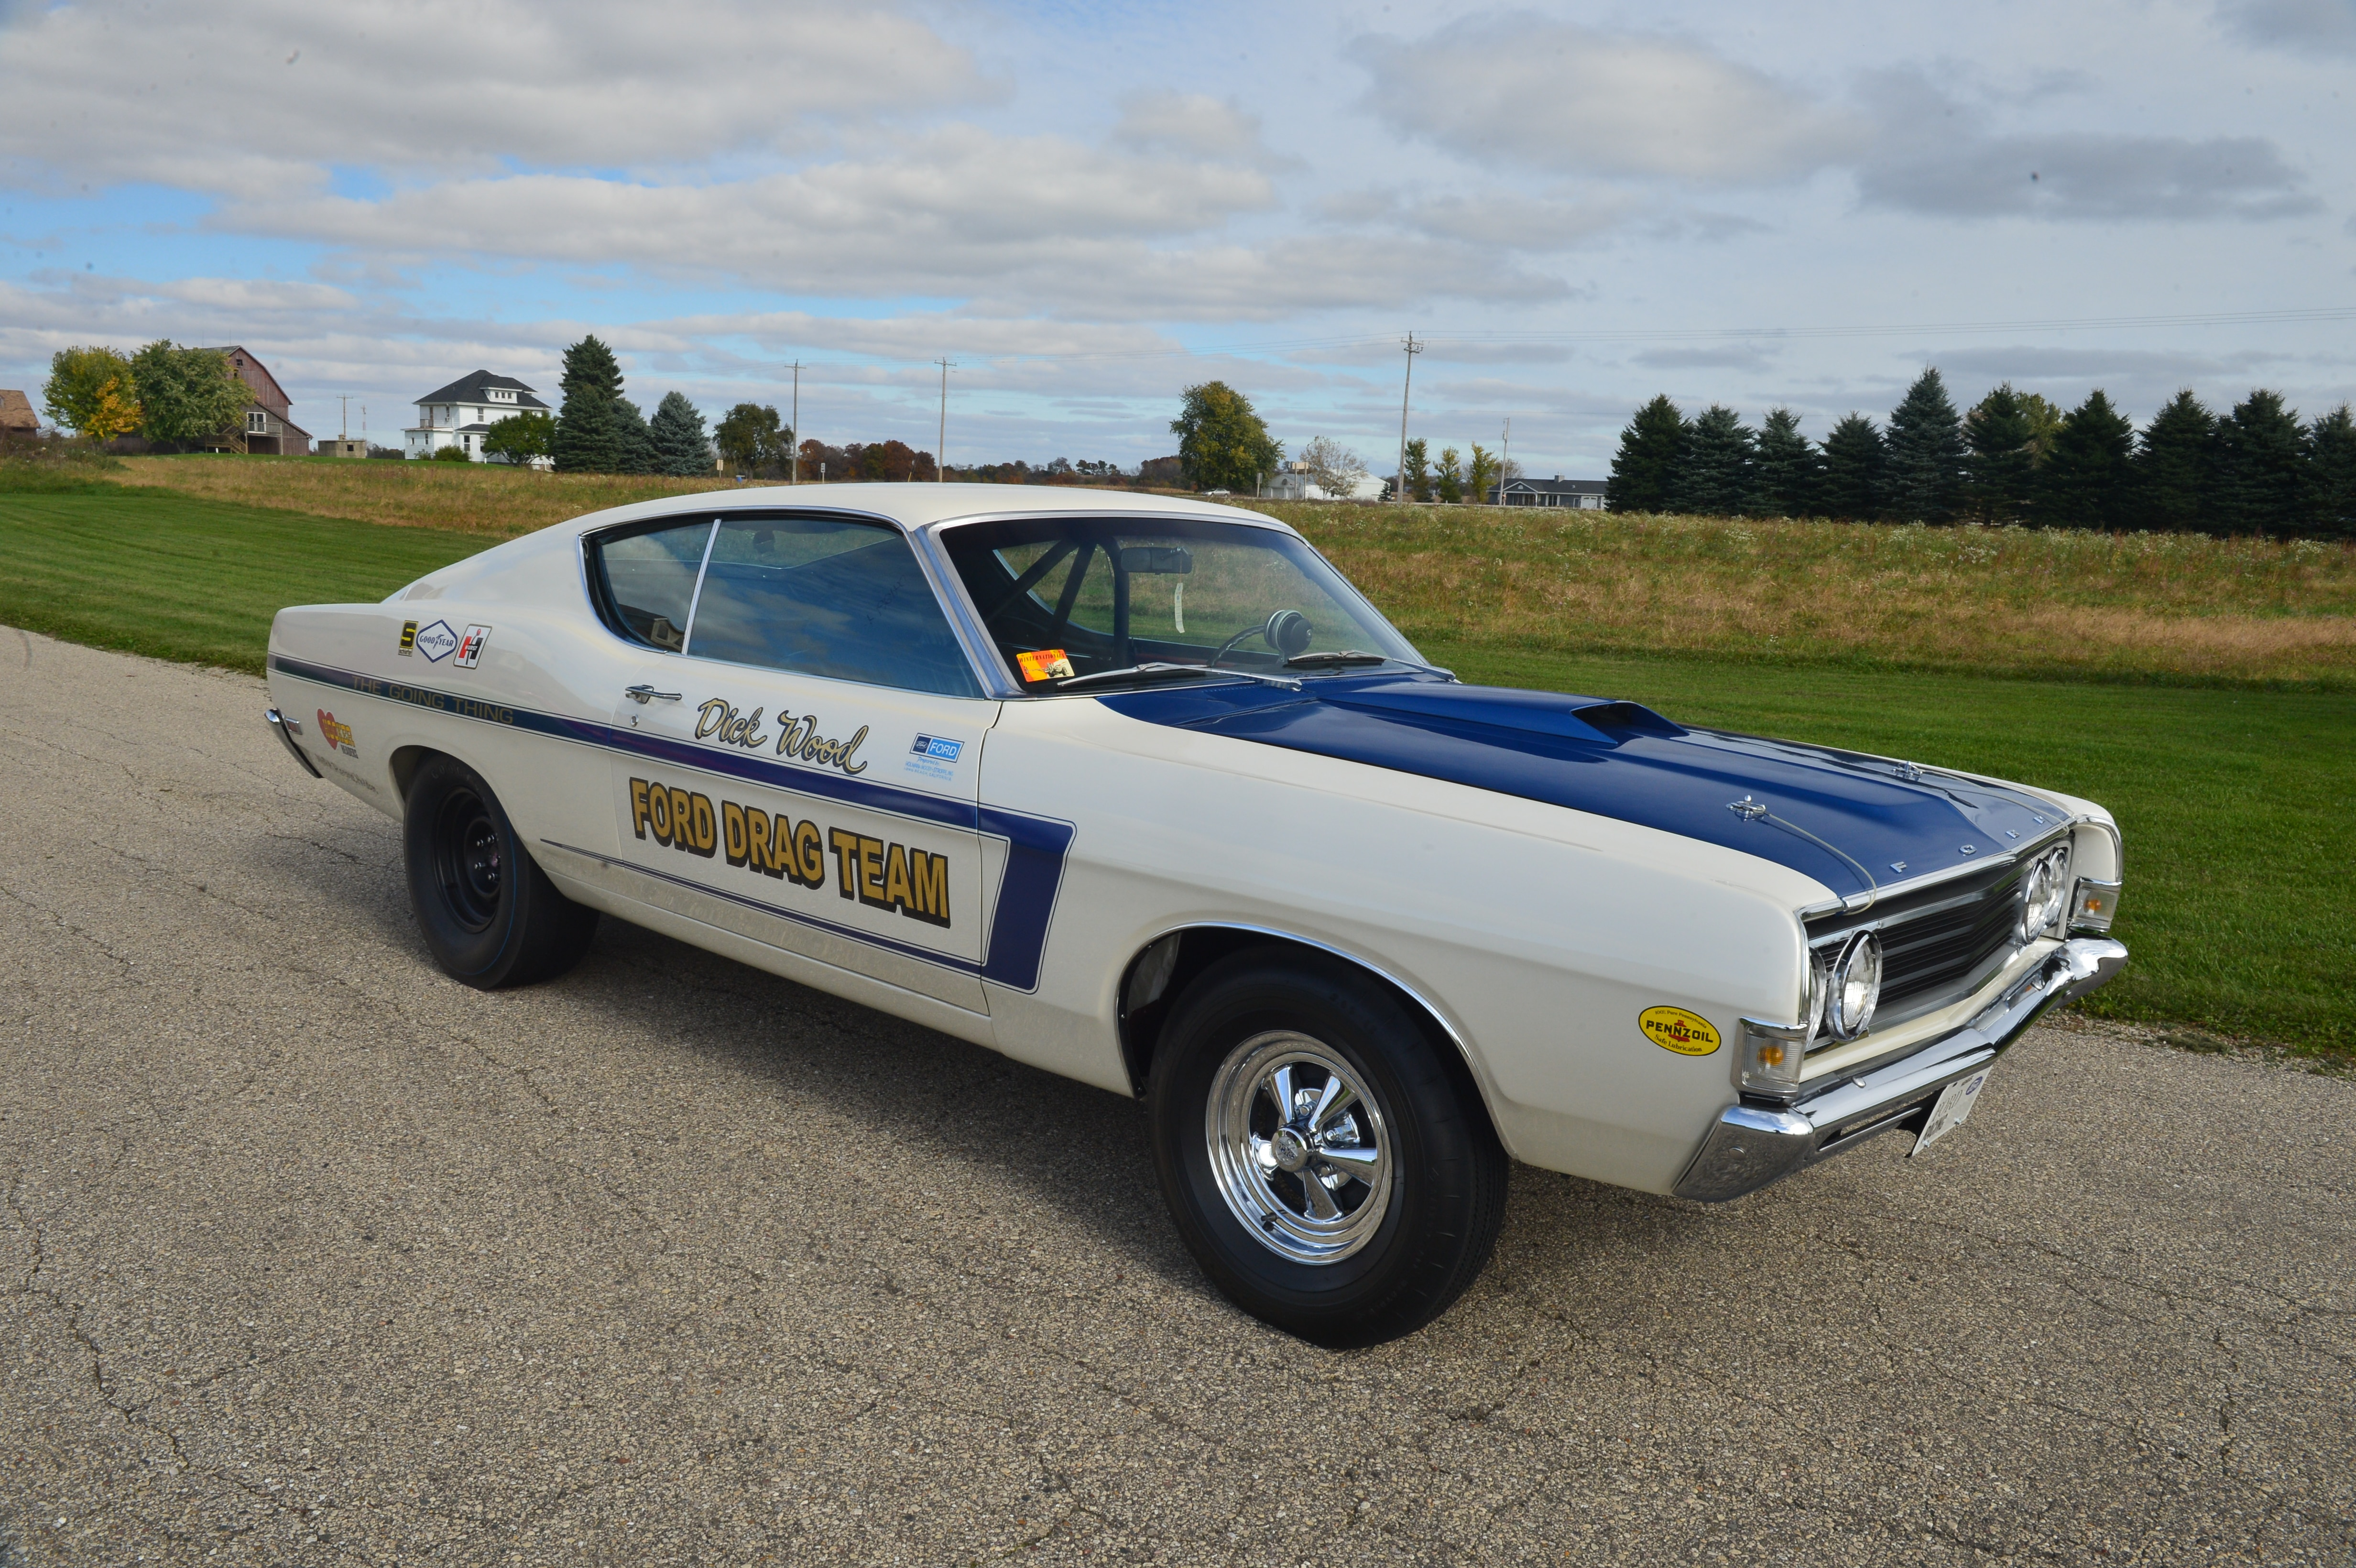 001 Rare Find 1969 Ford Fairlane Cobra Drag Team Partial Restoration